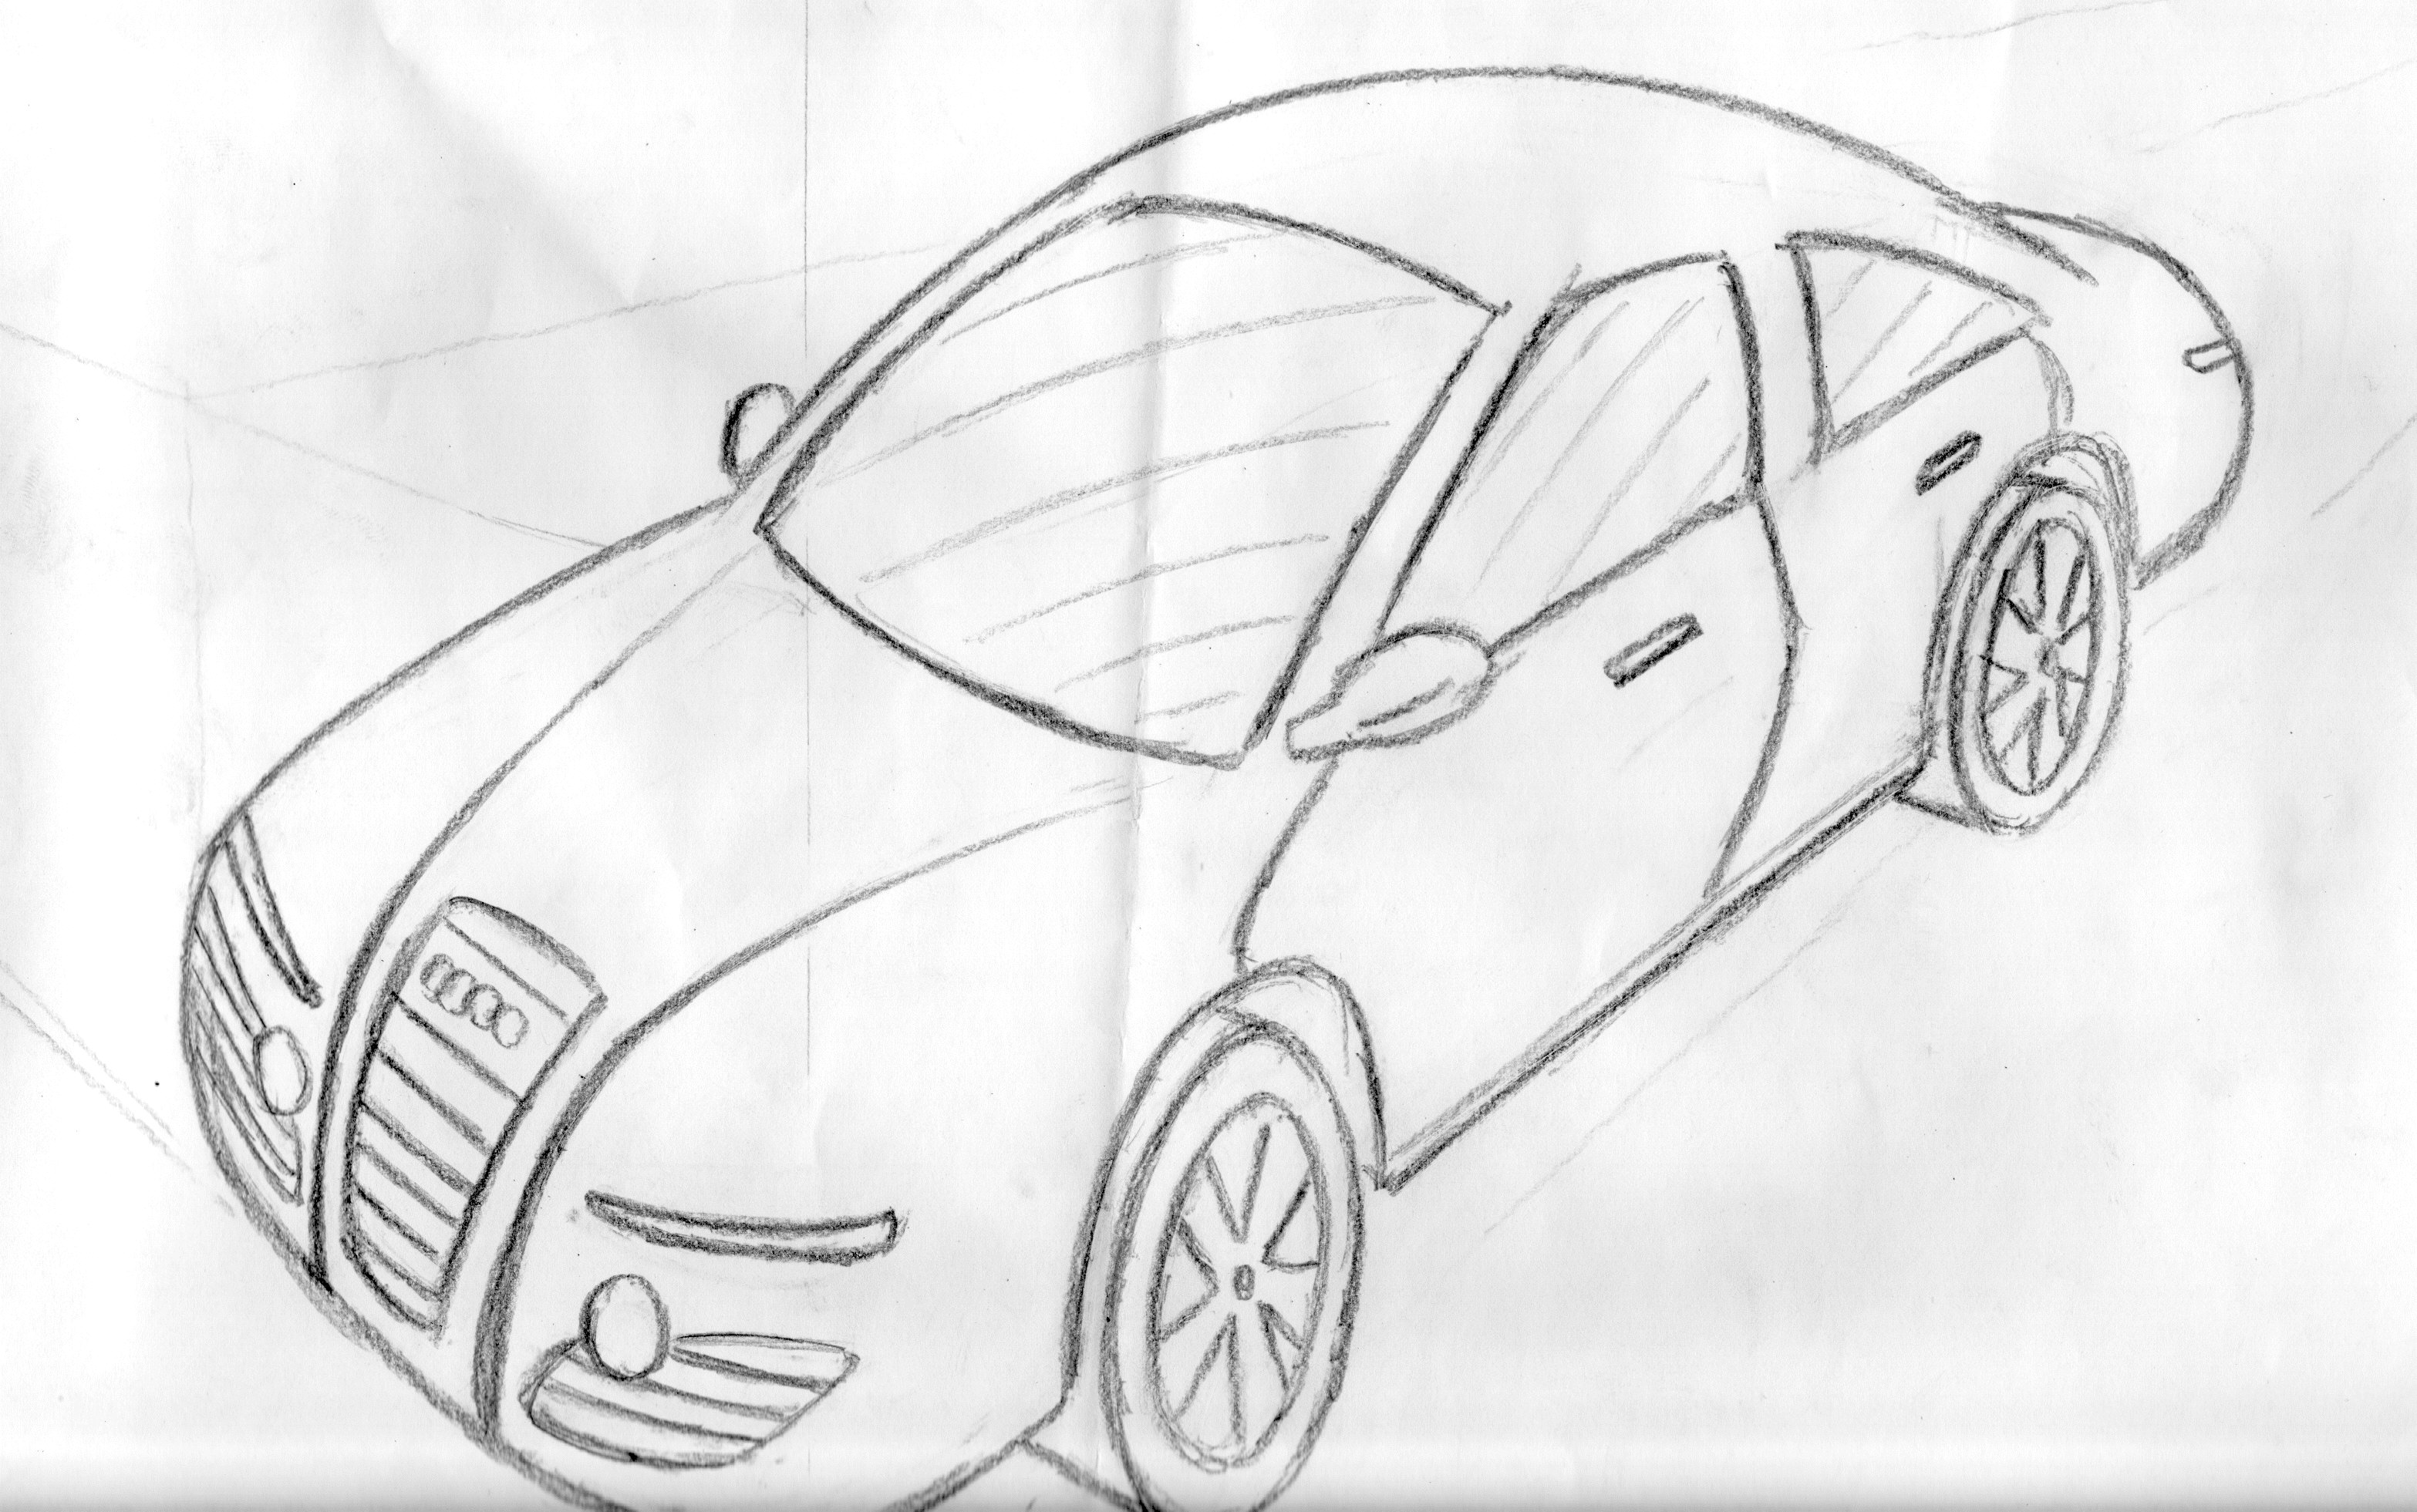 Drawn pice Jpg Car Wikipedia File:Drawn File:Drawn